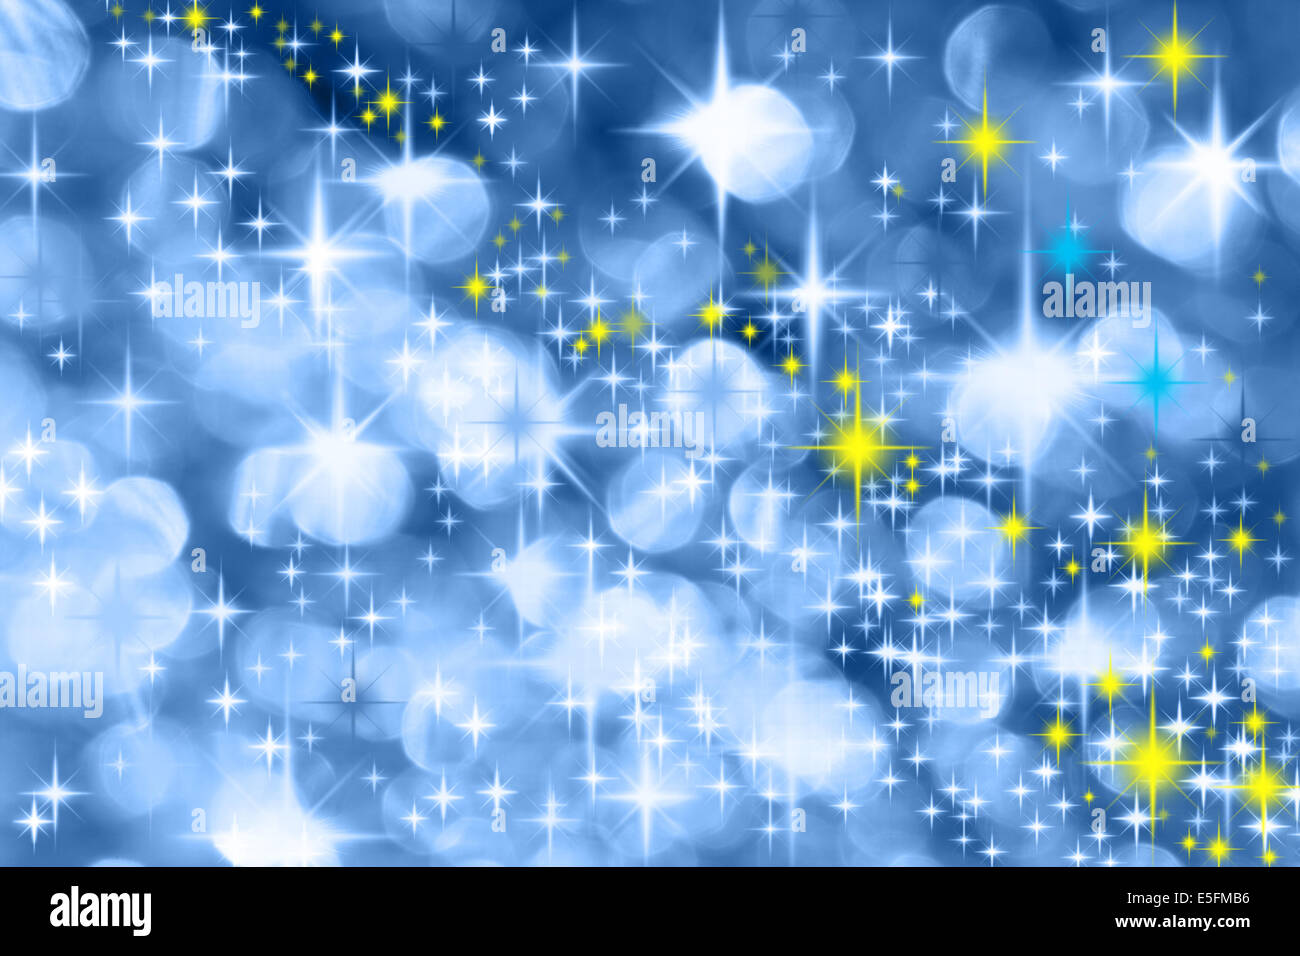 The Milky Way - Blue Christmas background with colorful stars - Stock Image